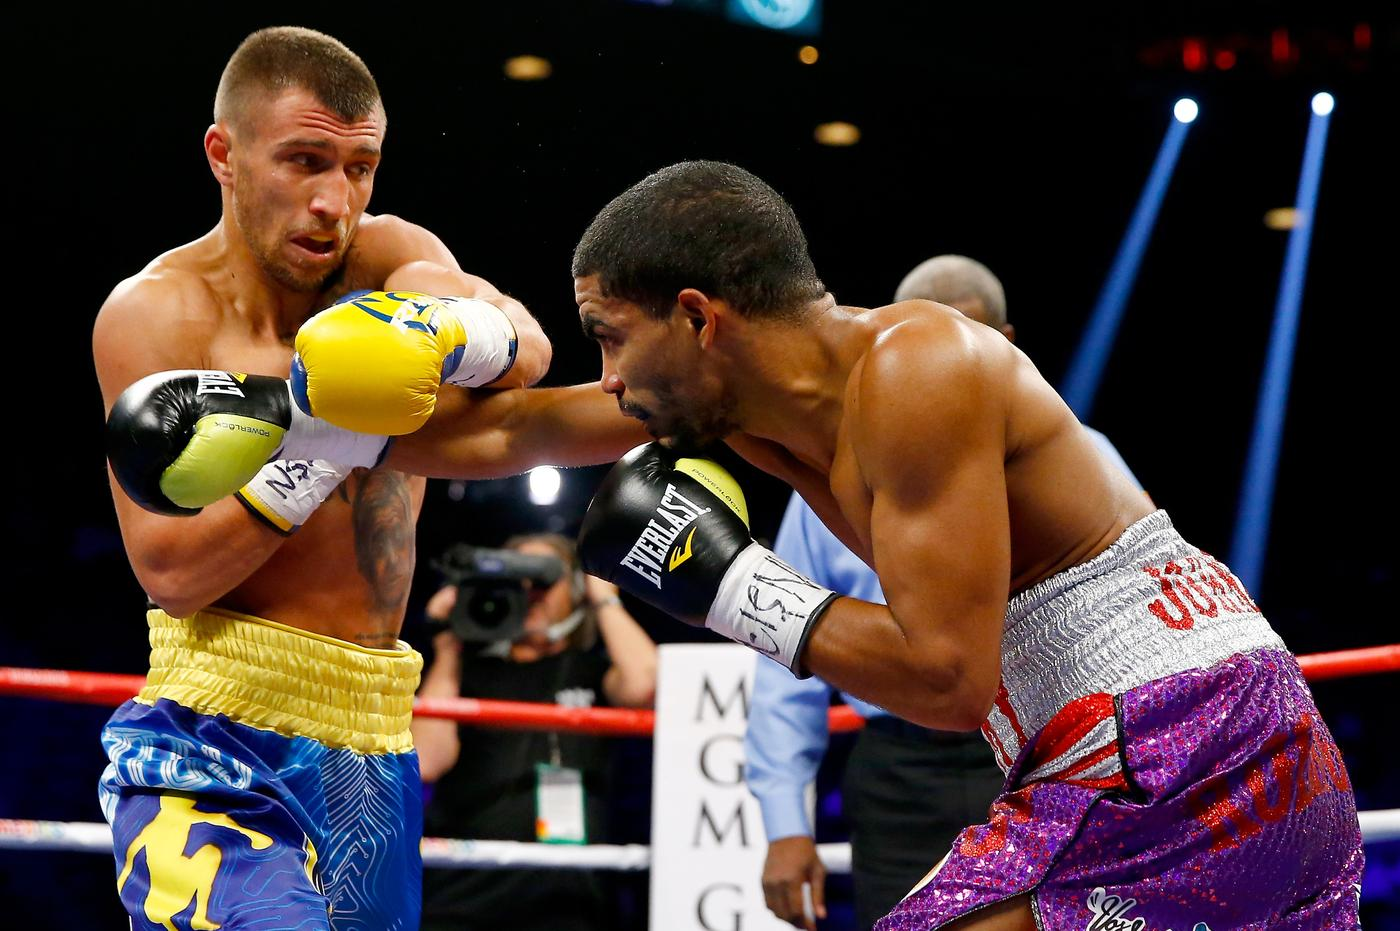 Vasyl Lomachenko v Jason Sosa TV channel, undercard, fight time, date and odds